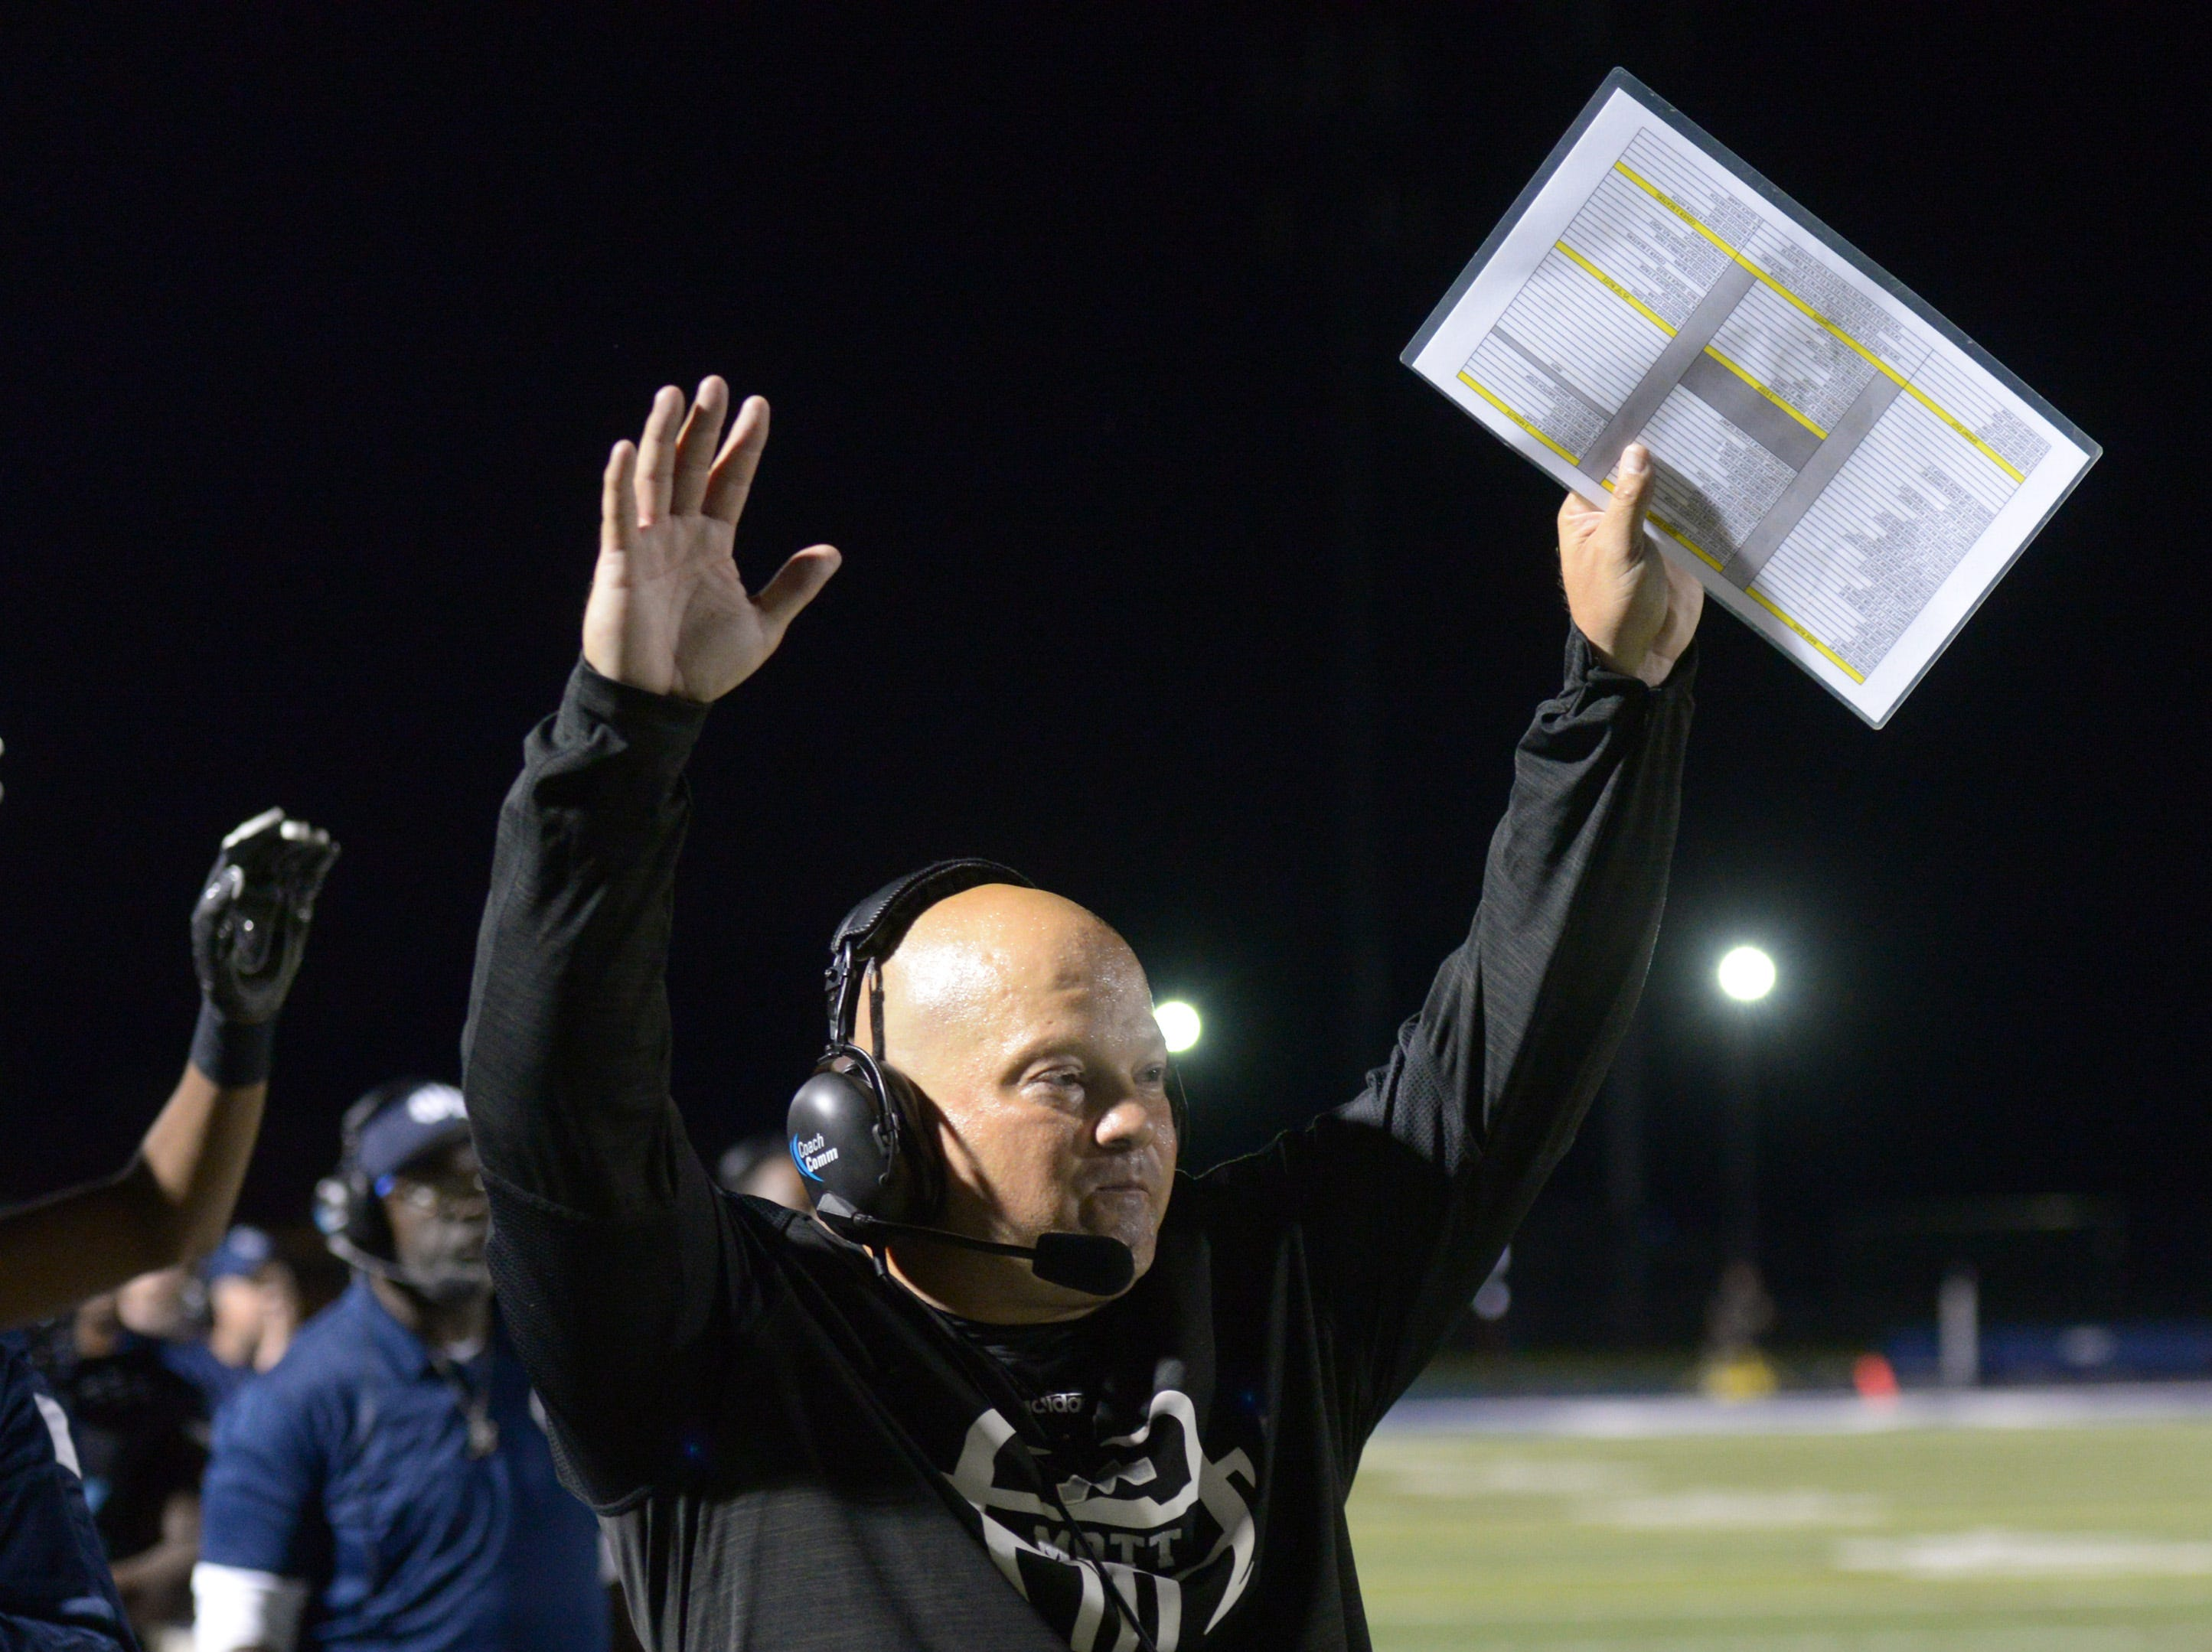 Waterford Mott coach Chris Fahr signals a TD late on the fourth quarter as his defeats Lakeland 26-19.